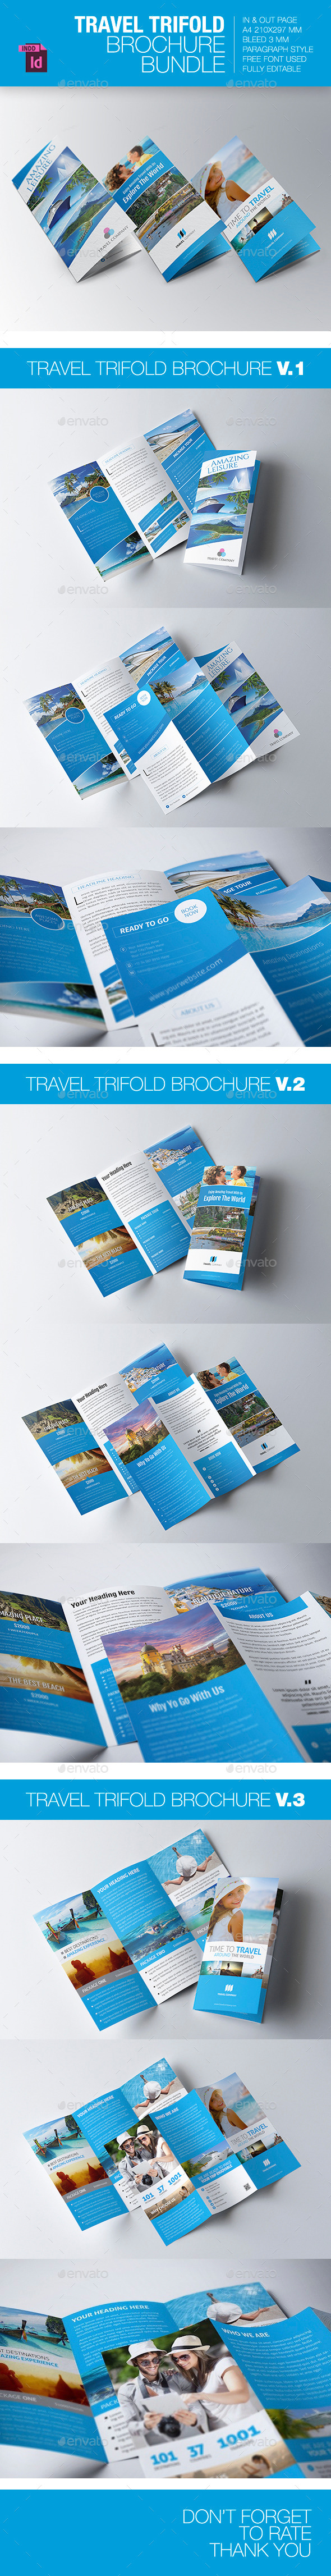 GraphicRiver Travel Trifold Brochure Bundle 9255579